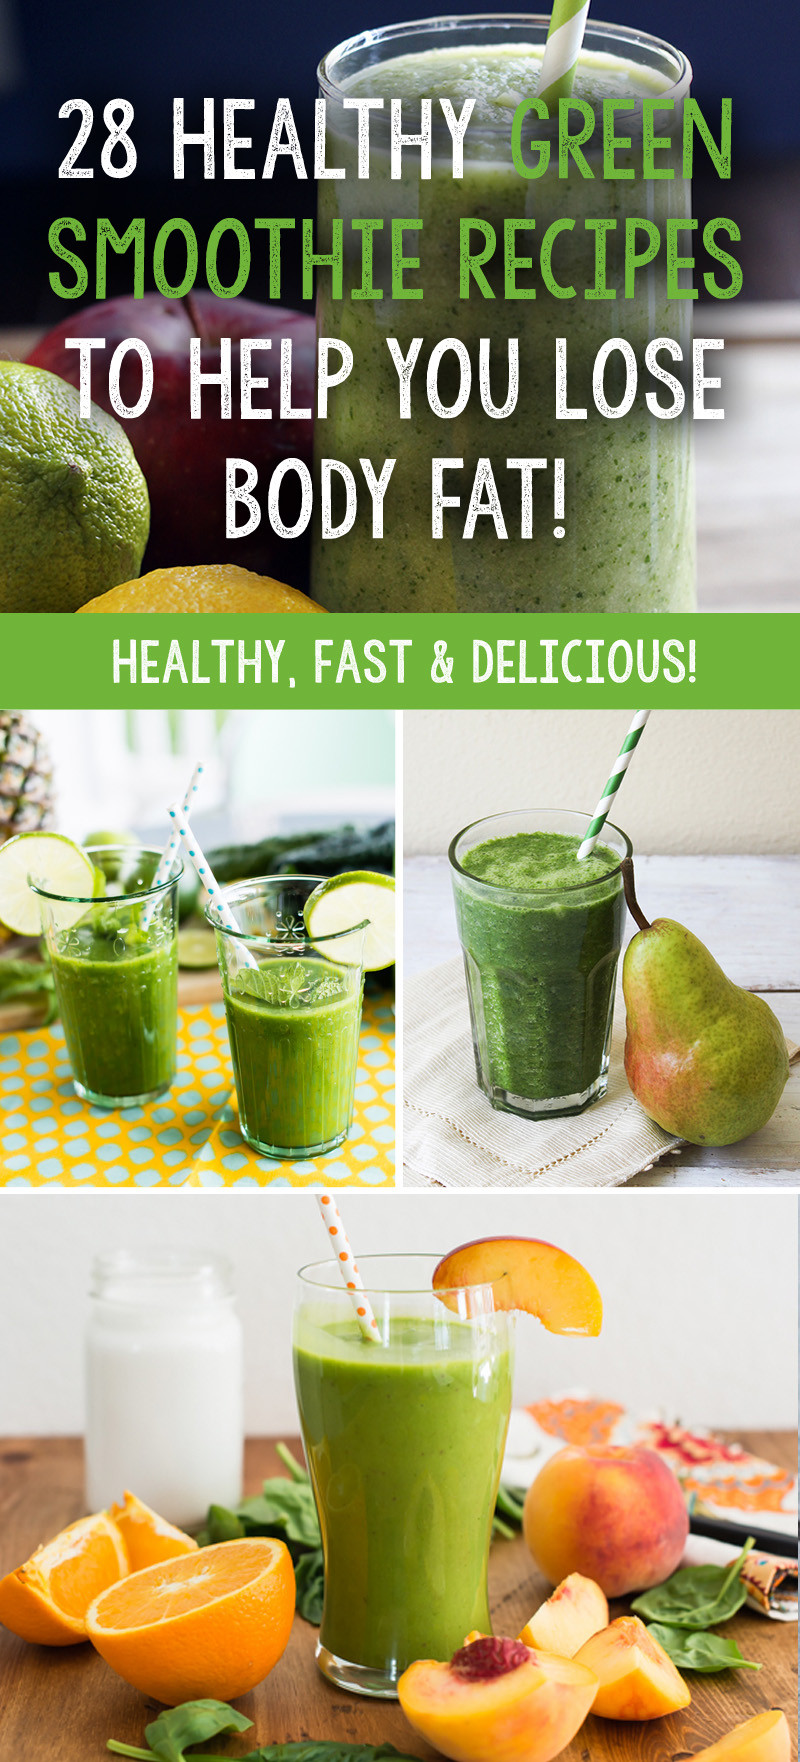 Healthy Green Smoothies  28 Healthy Green Smoothie Recipes To Help You Lose Body Fat